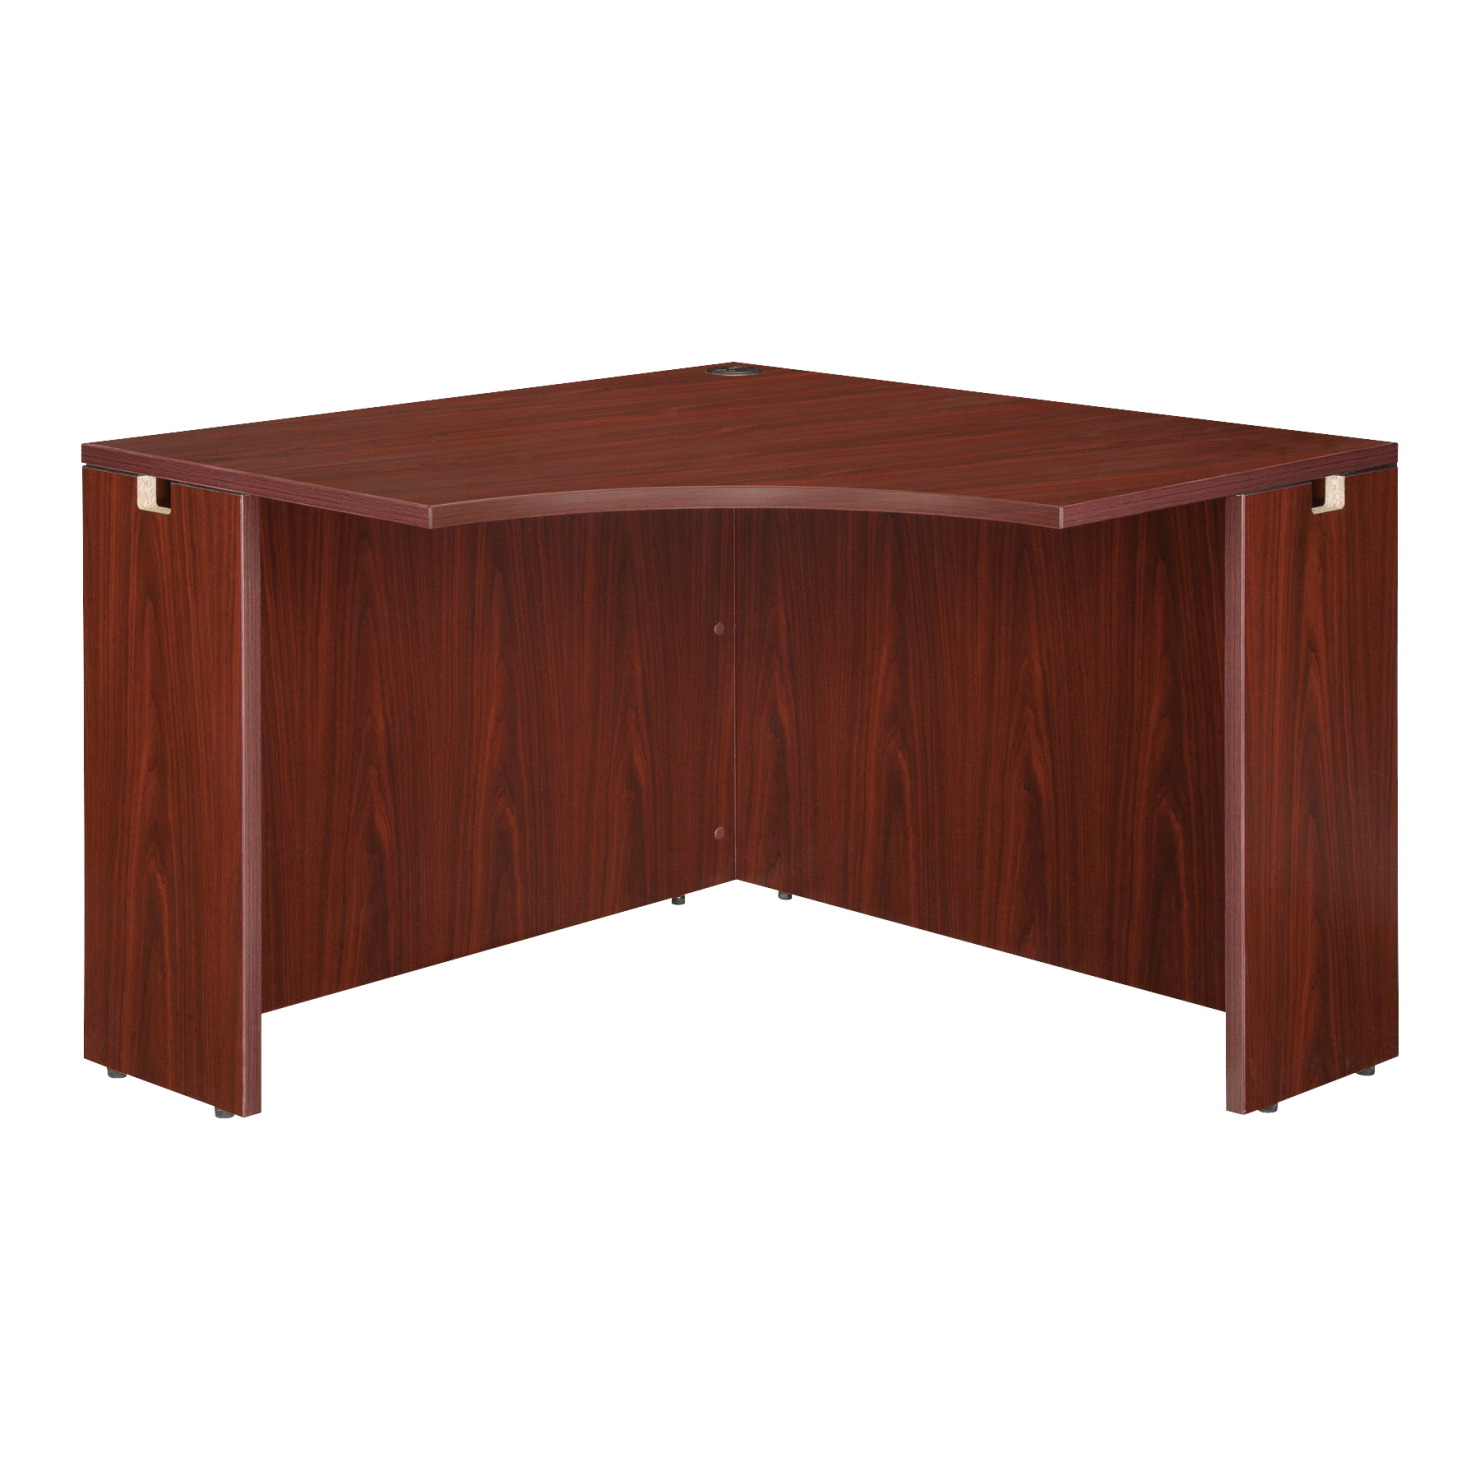 Classroom Select 69000 Corner Desk, 42 x 42 x 29-1/2 Inches, Various Options